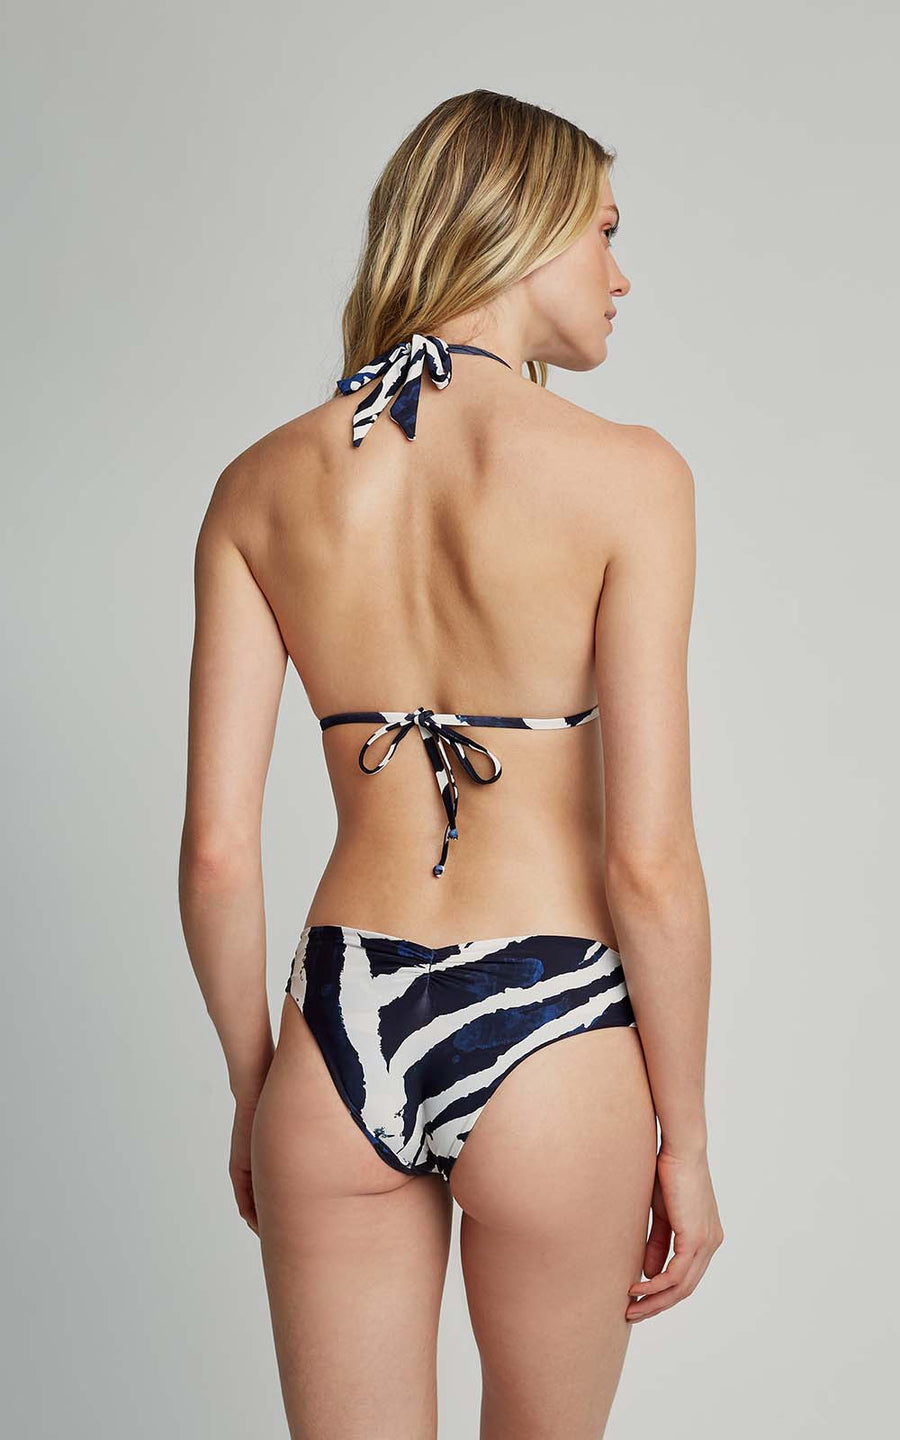 Araguaia Bikini Adjustable Accessory Top and Bottom (Sustainable Collection)